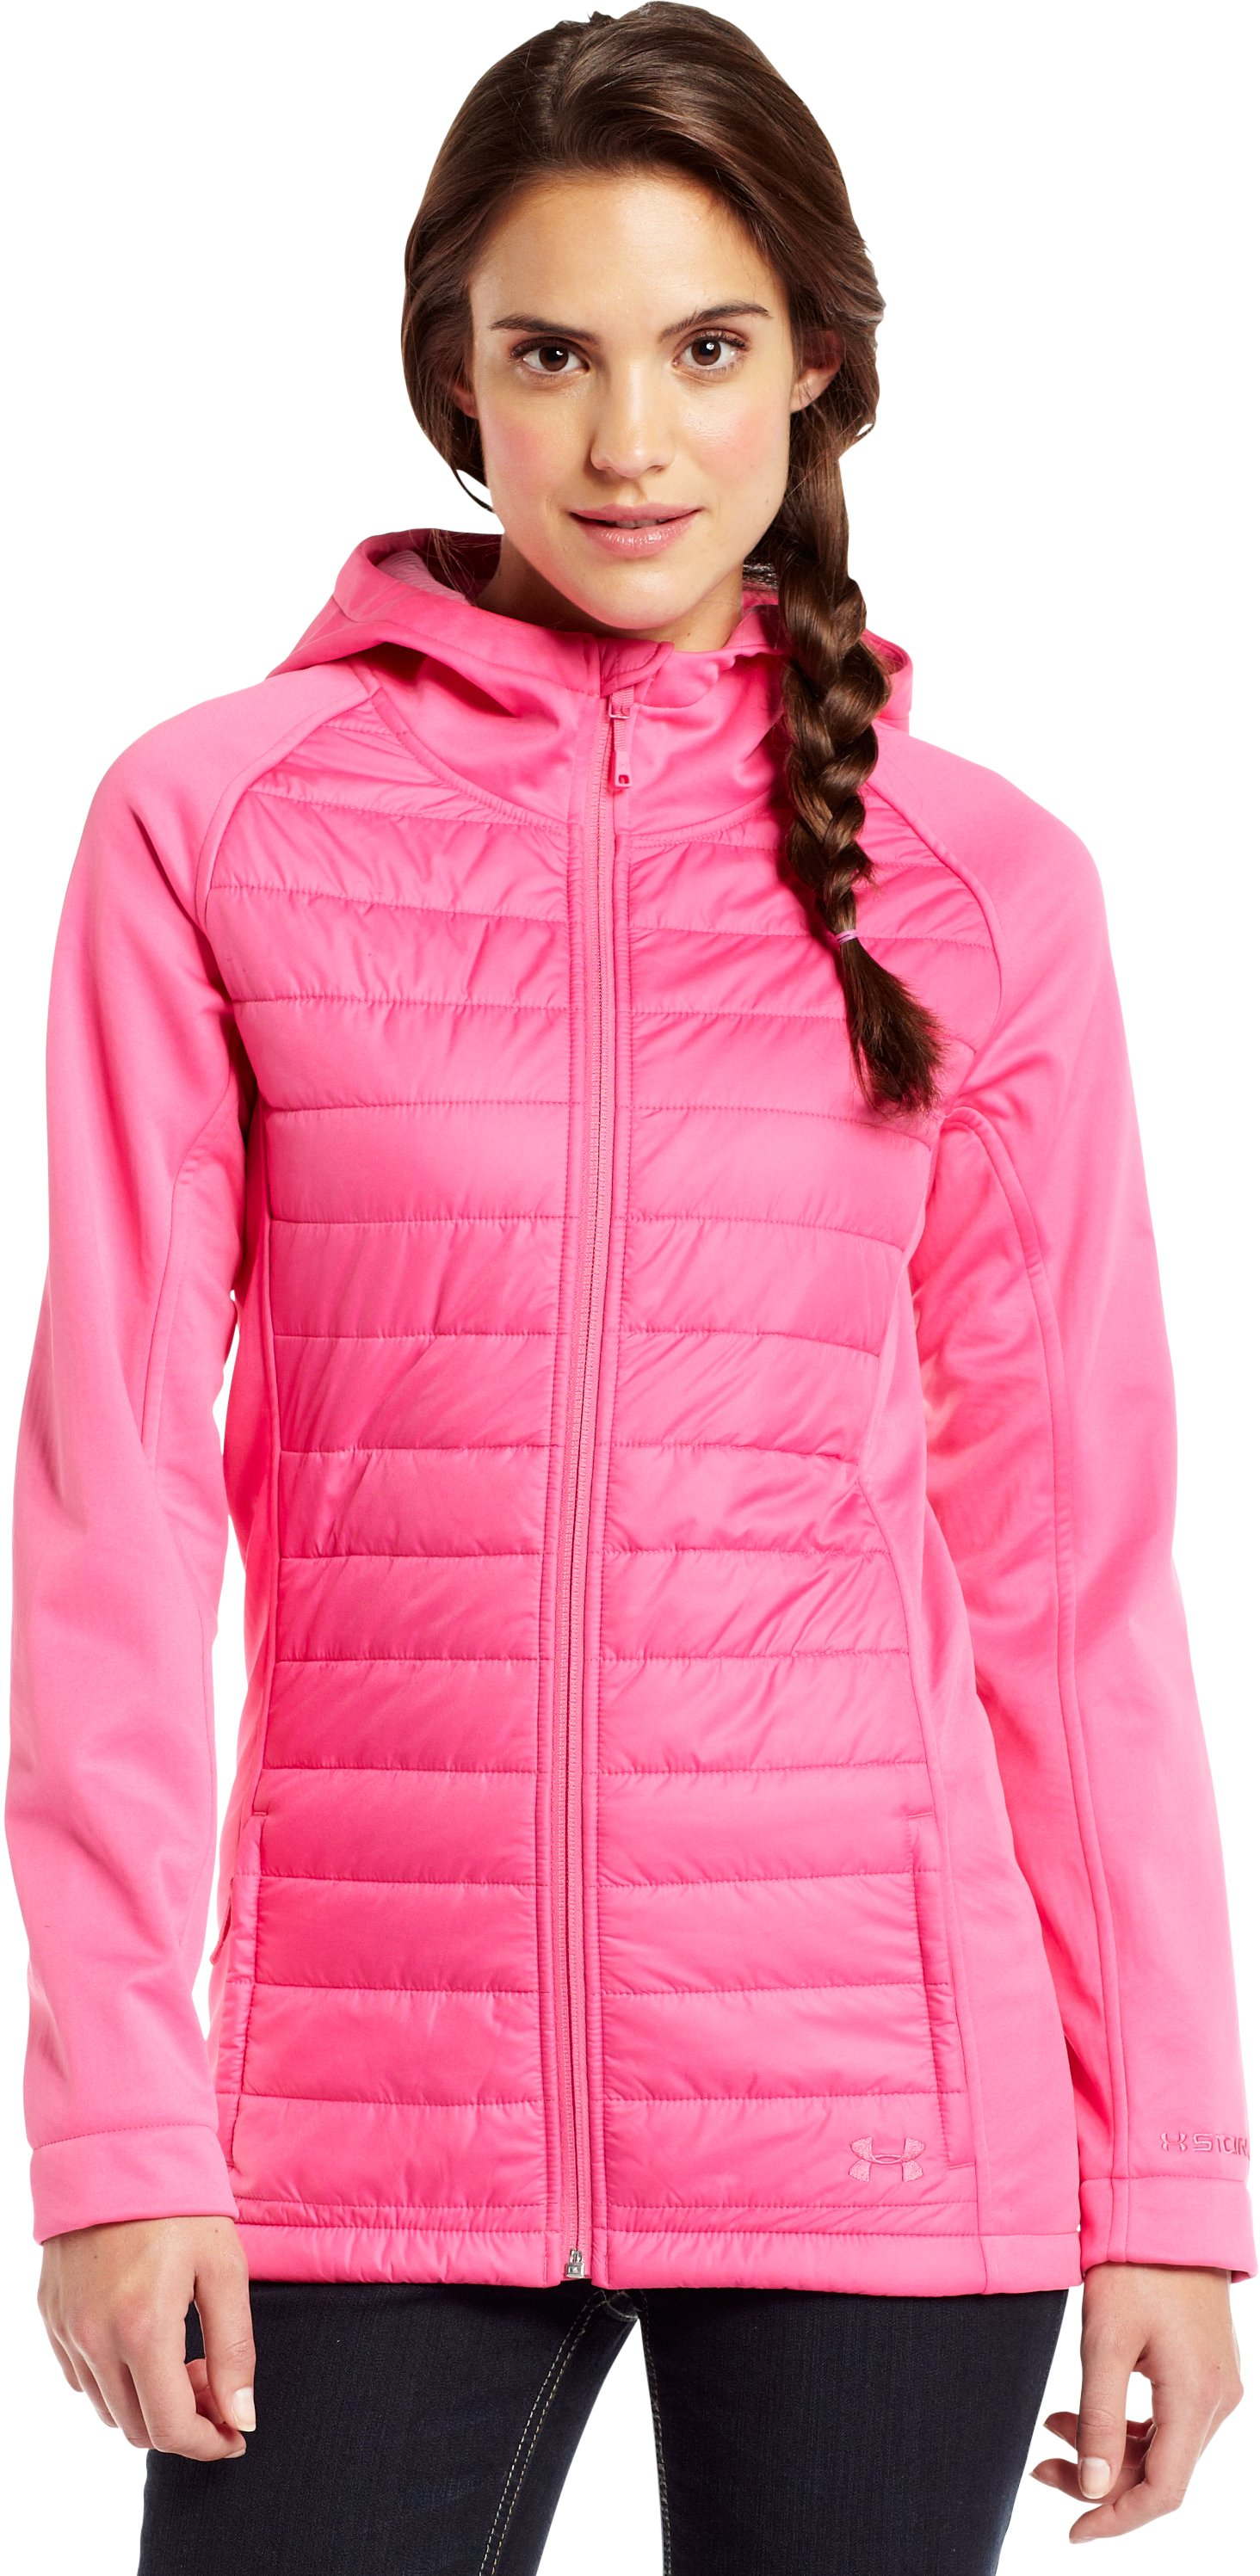 Women's ColdGear® Infrared Werewolf Jacket, Lollipop